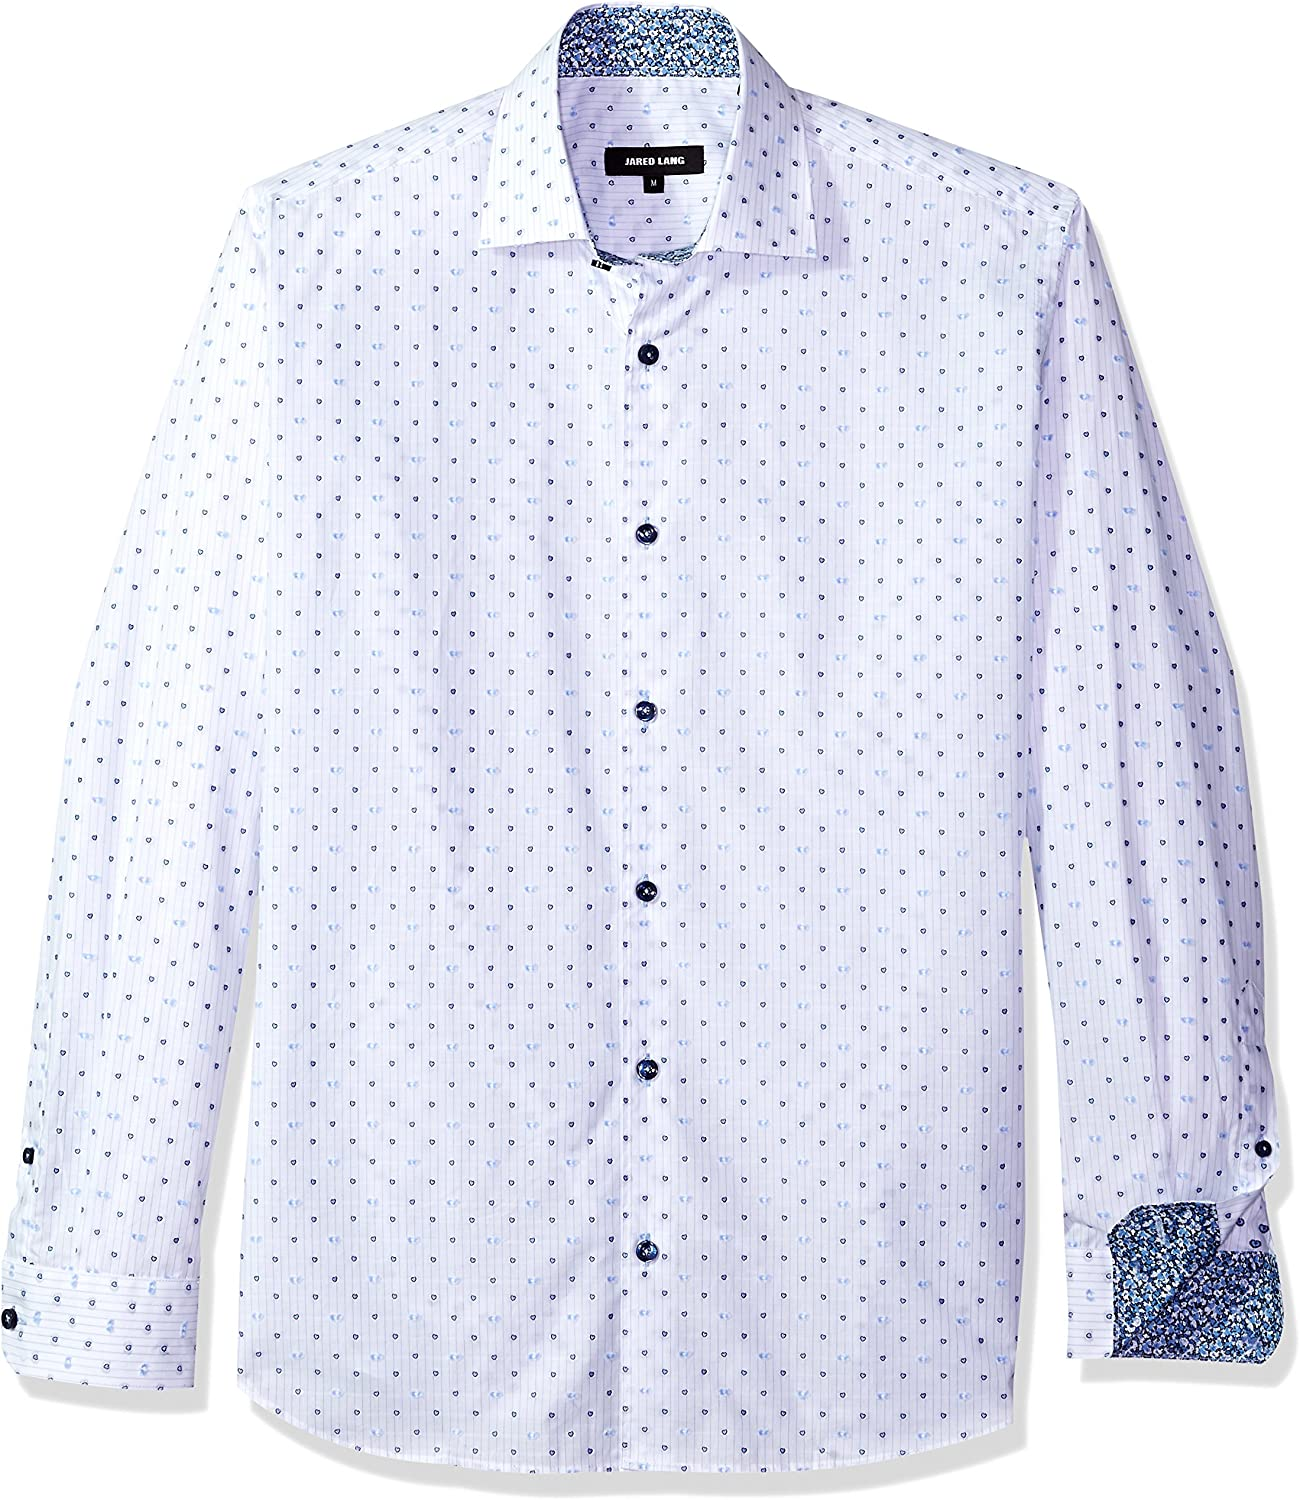 412baeff Jared Lang Mens Mens Shirt Shirt Shirt in White and Dots Button Down Shirt  11cfd7